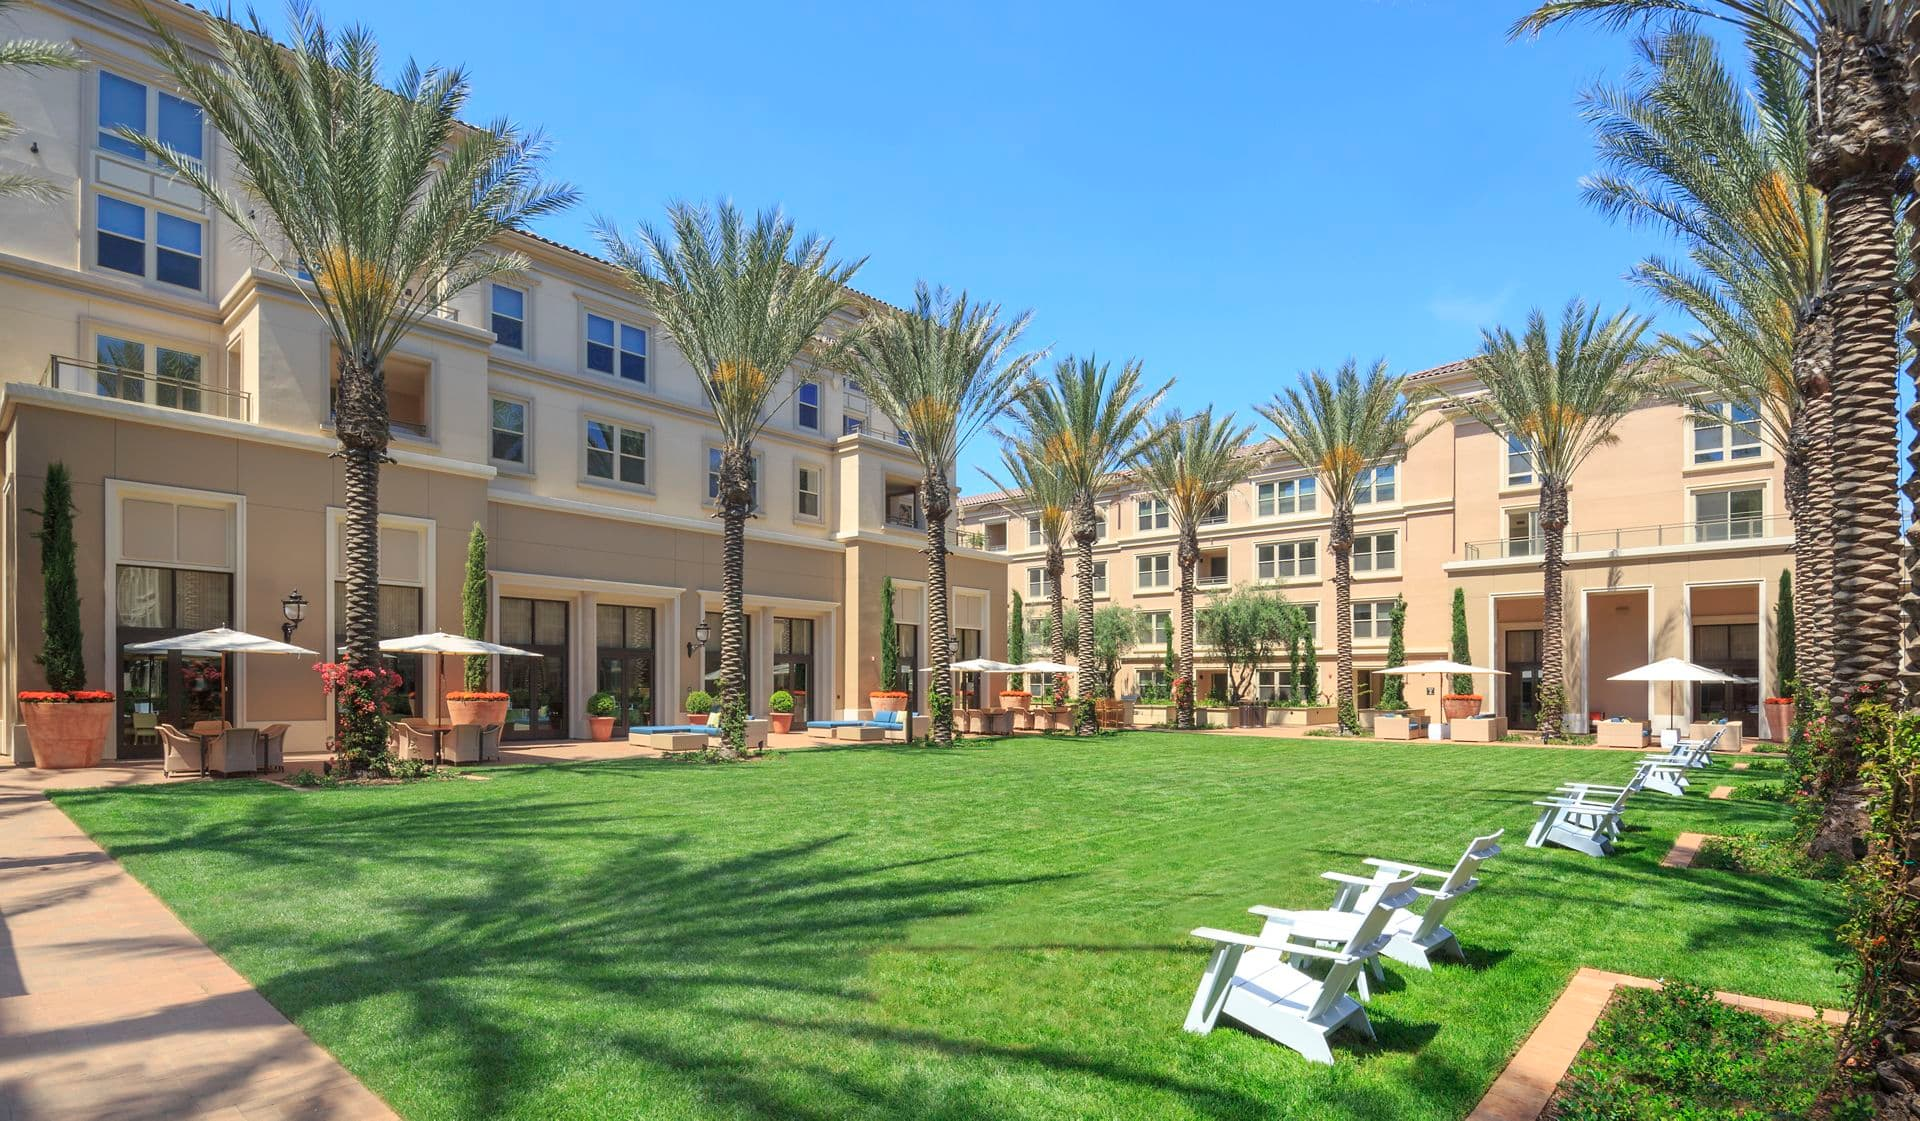 Exterior view of lawn and lounge area at Villas Fashion Island Apartment Homes in Newport Beach, CA.